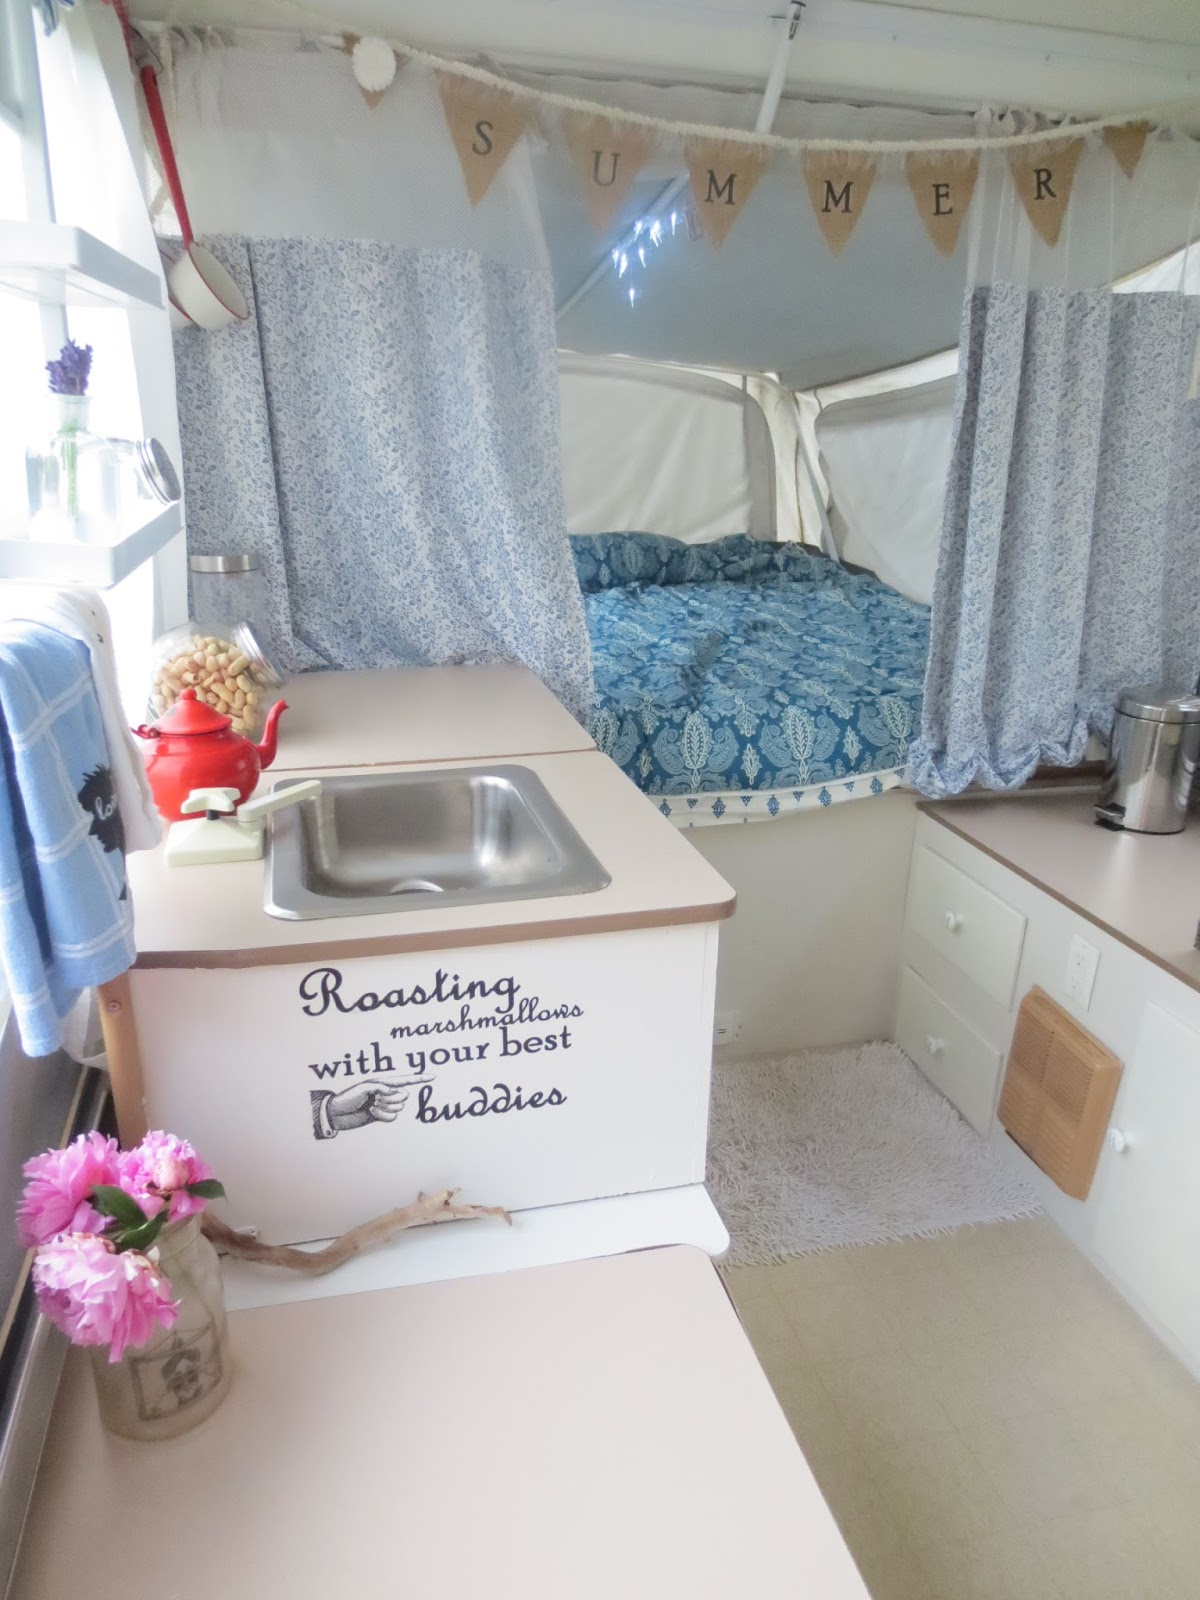 Camping in Cute Campers - Sweet Meas | Squirrelly Minds